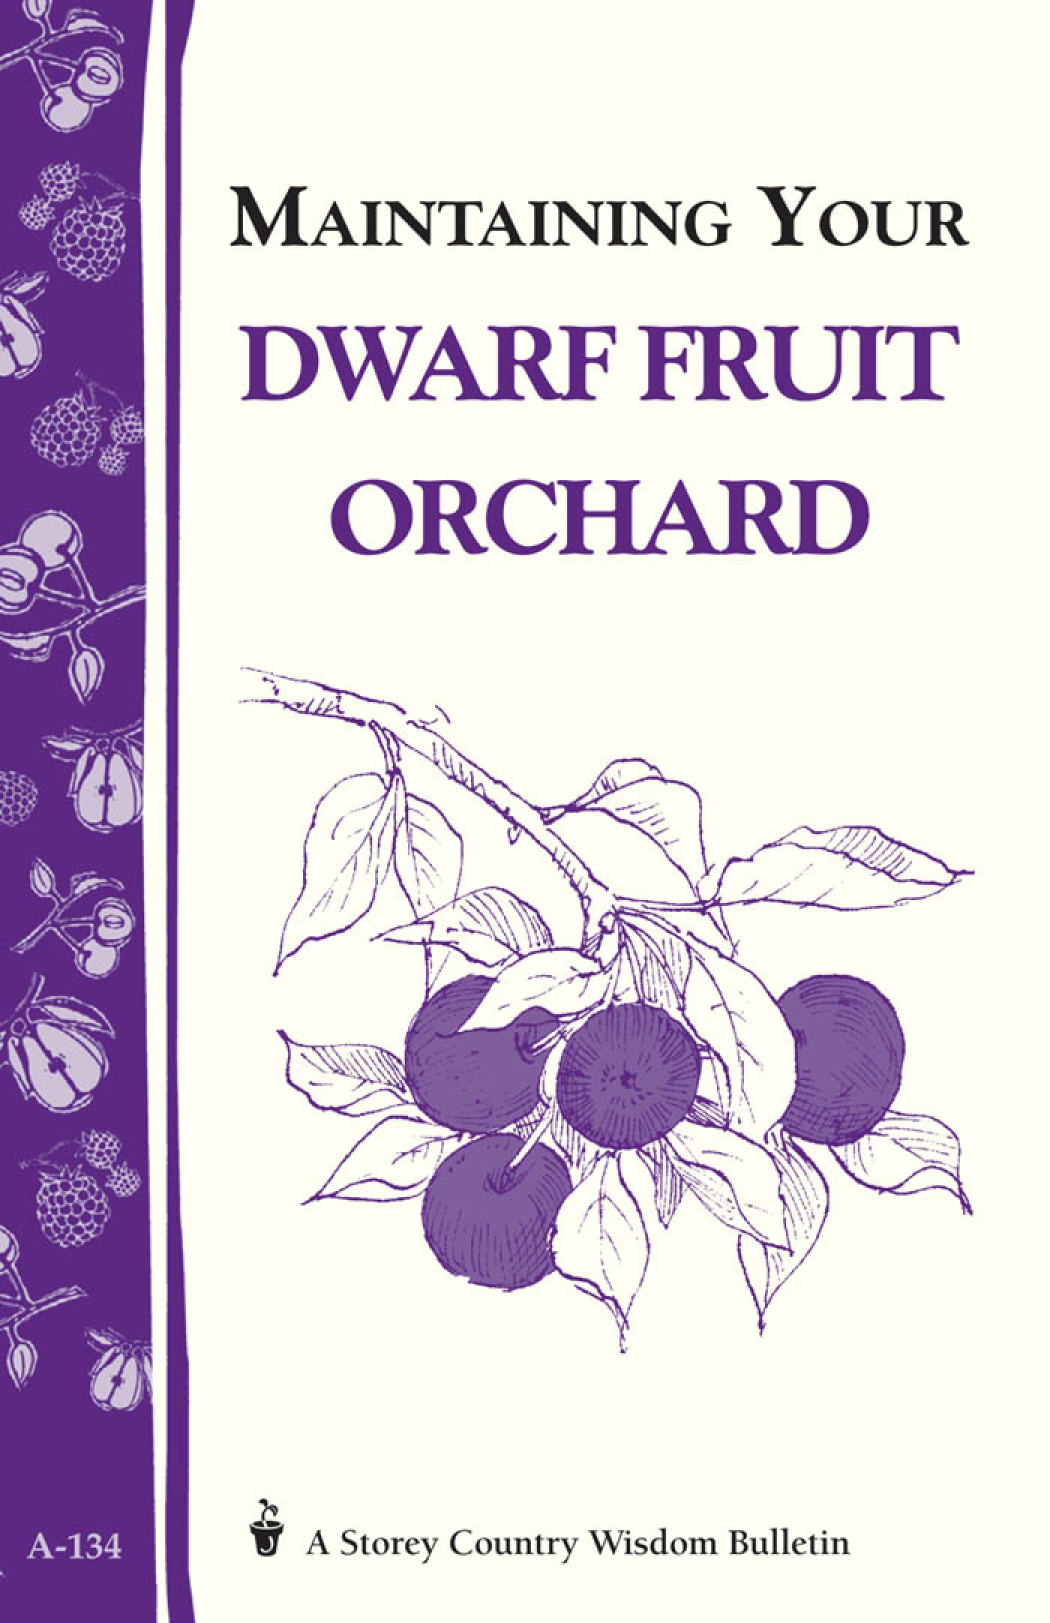 Maintaining Your Dwarf Fruit Orchard Storey's Country Wisdom Bulletin A-134 - Editors of Storey Publishing